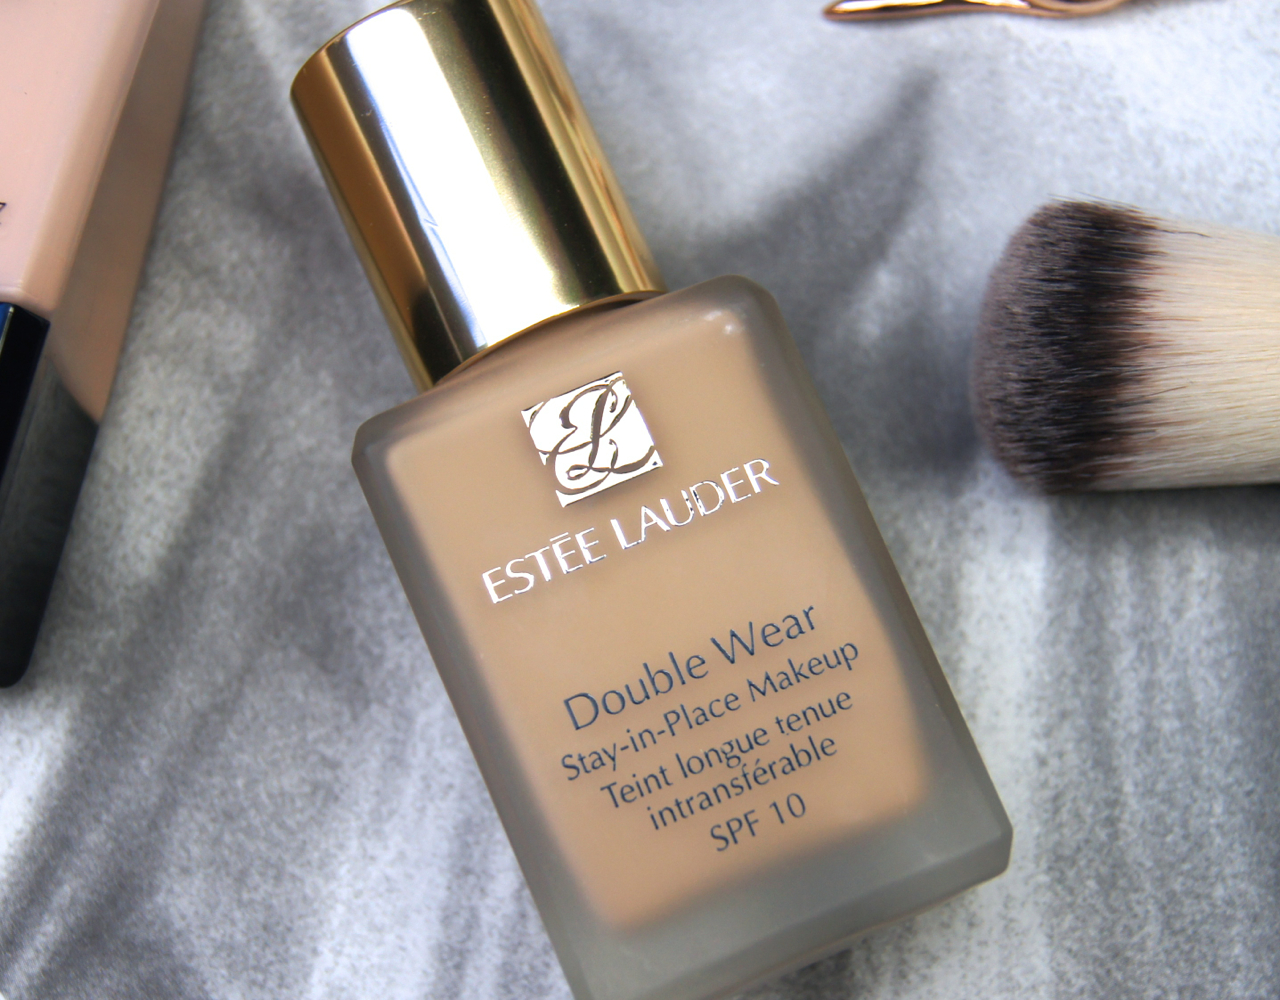 estee lauder double wear stay in place makeup foundation full coverage review